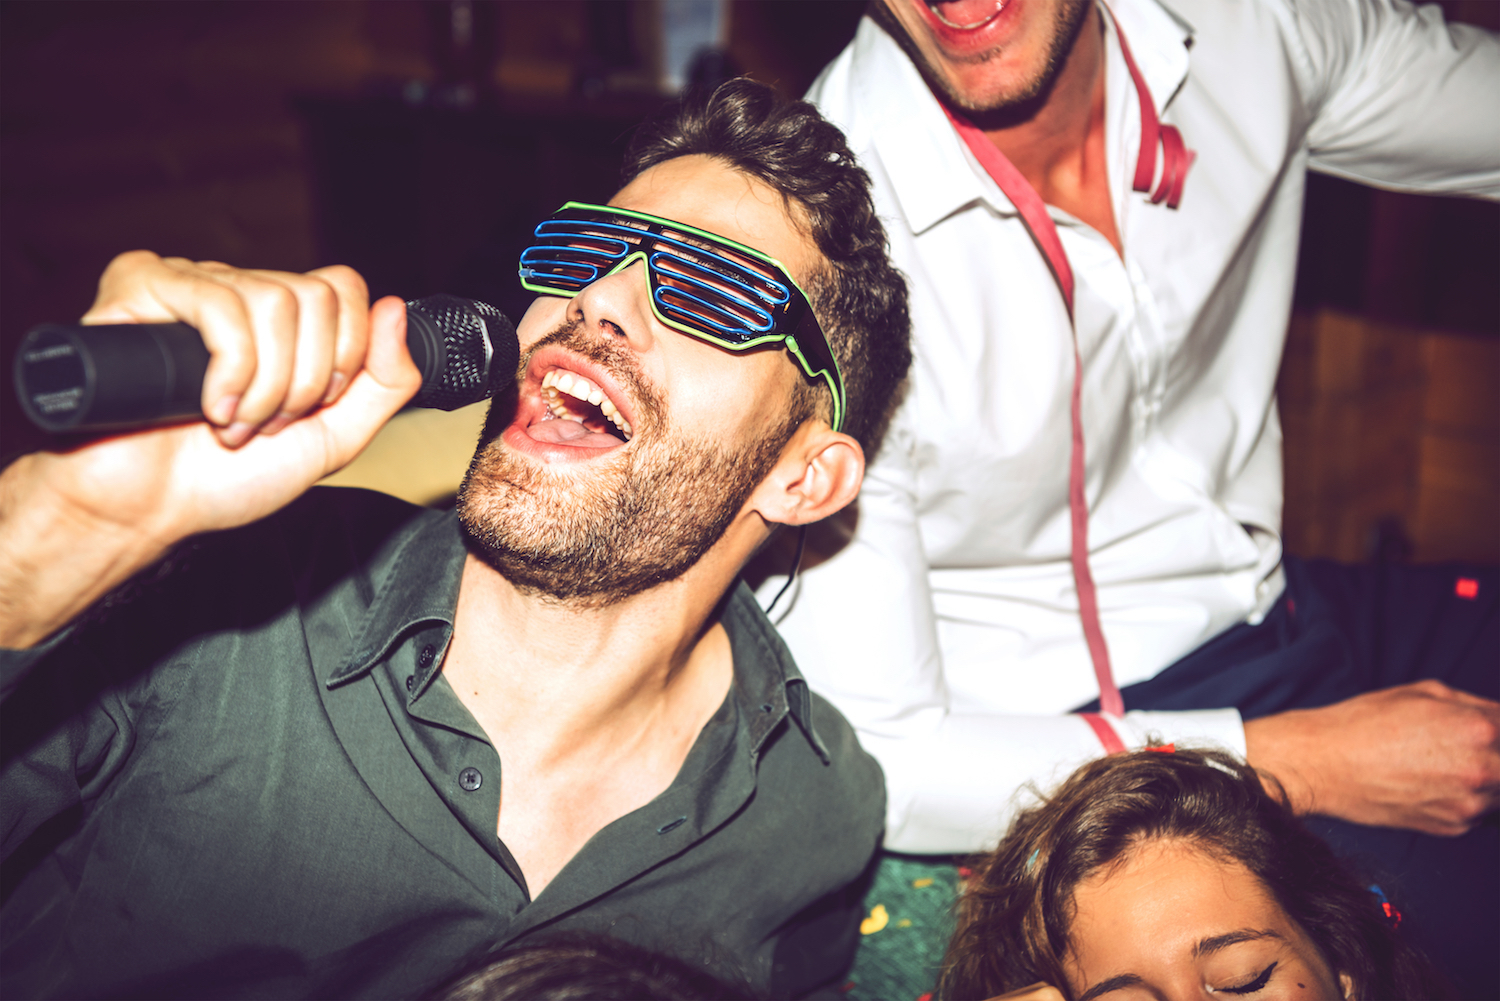 The best karaoke bars in Chicago